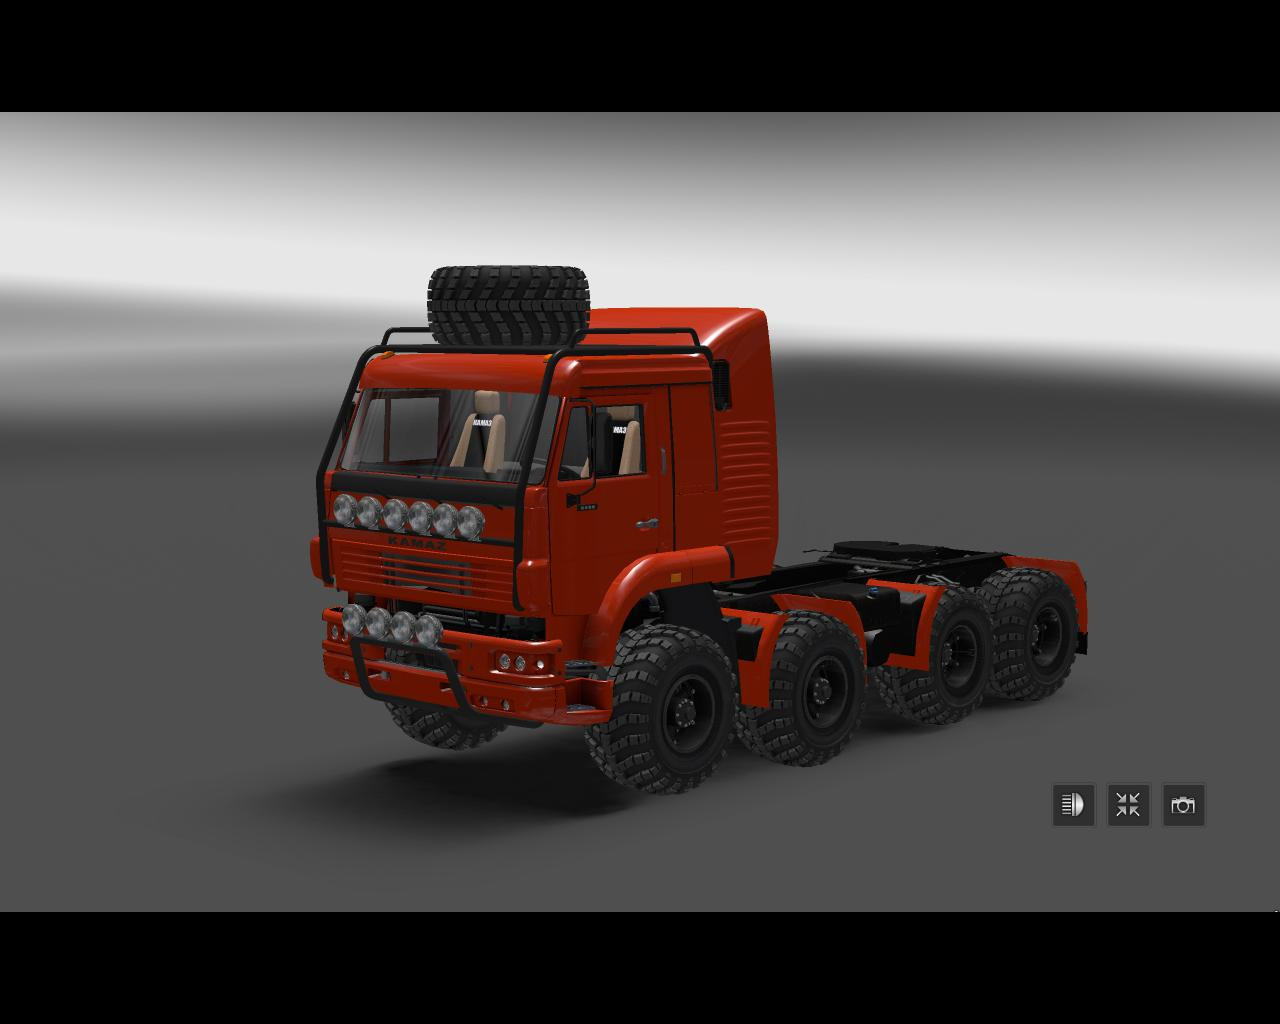 Kamaz X Monster V Truck on How Does An Engine Work